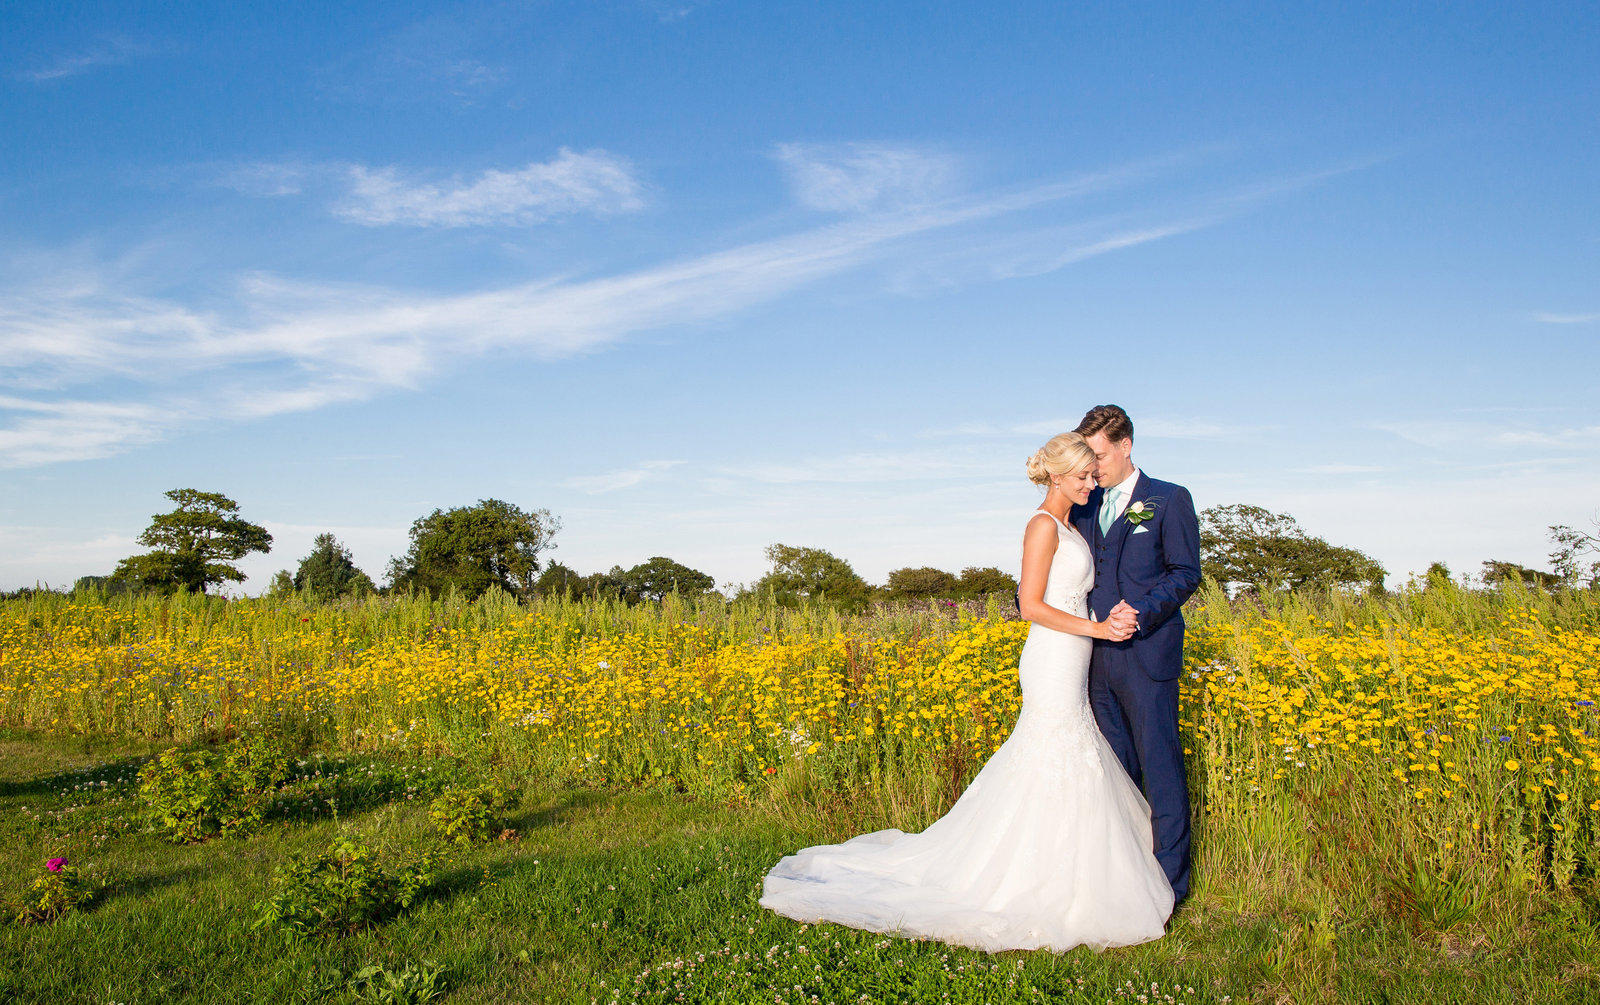 adorlee-0562-southend-barns-wedding-photographer-chichester-west-sussex